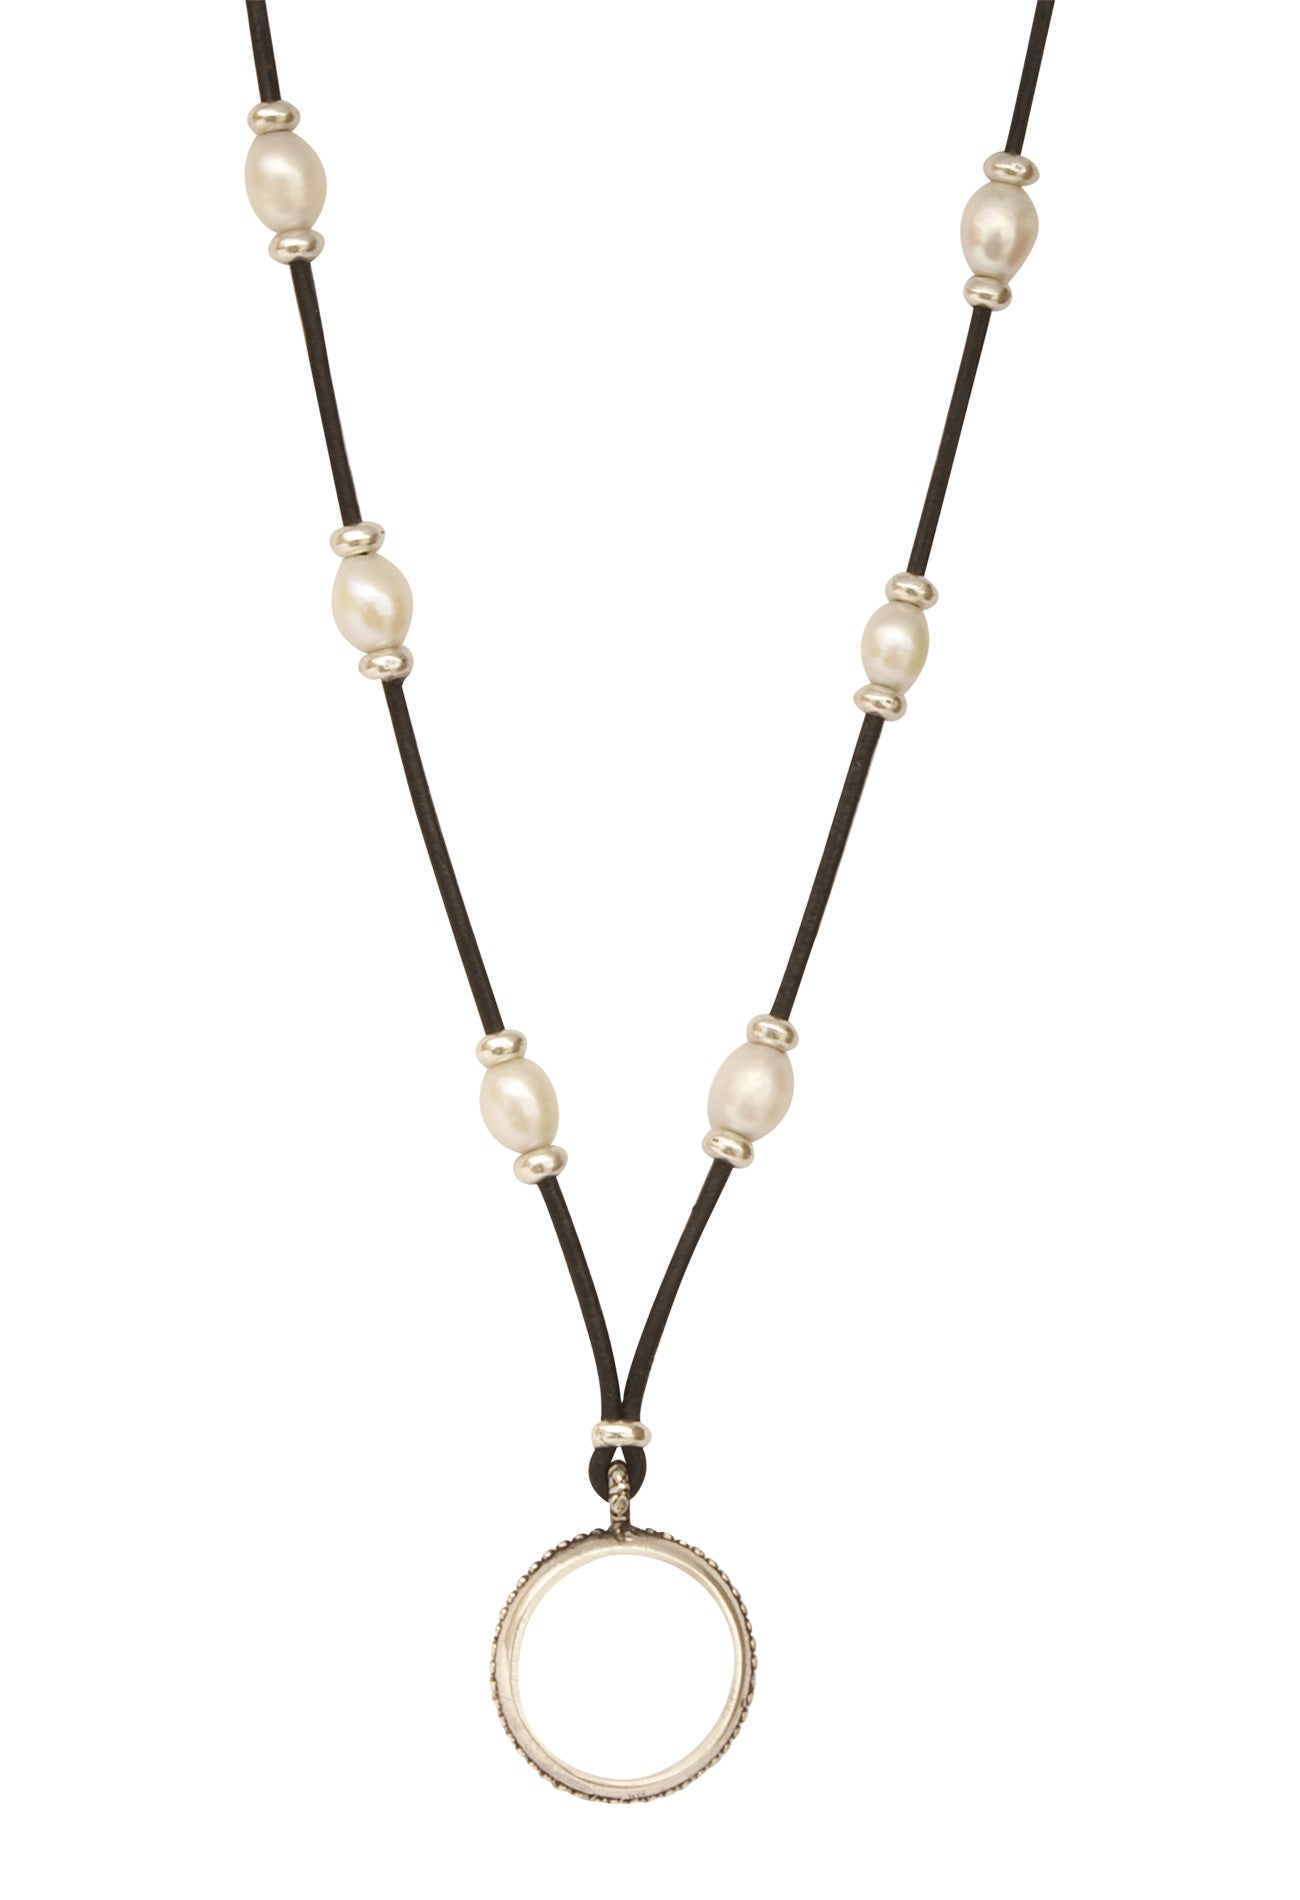 Teardrops of the Angels Pearl and Leather Eyering Necklace